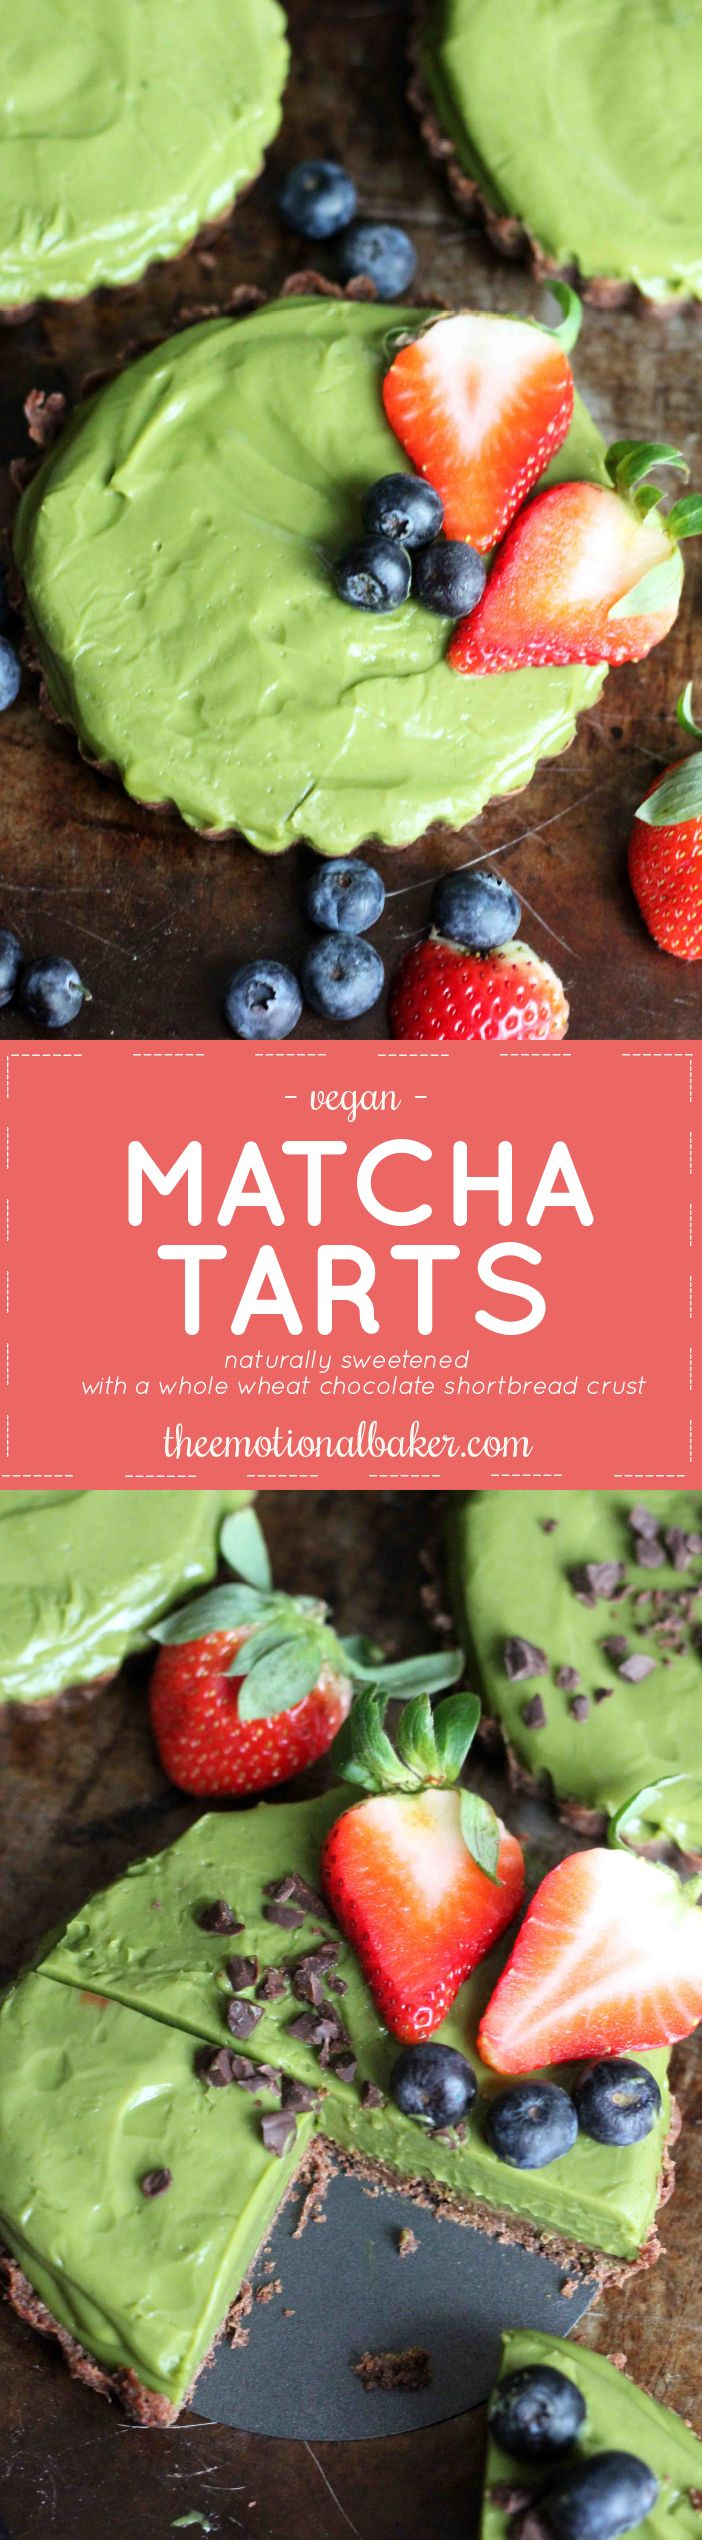 This Matcha Tart is secretly healthy! It's sweetened with coconut sugar and maple syrup and has a whole wheat chocolate crust.